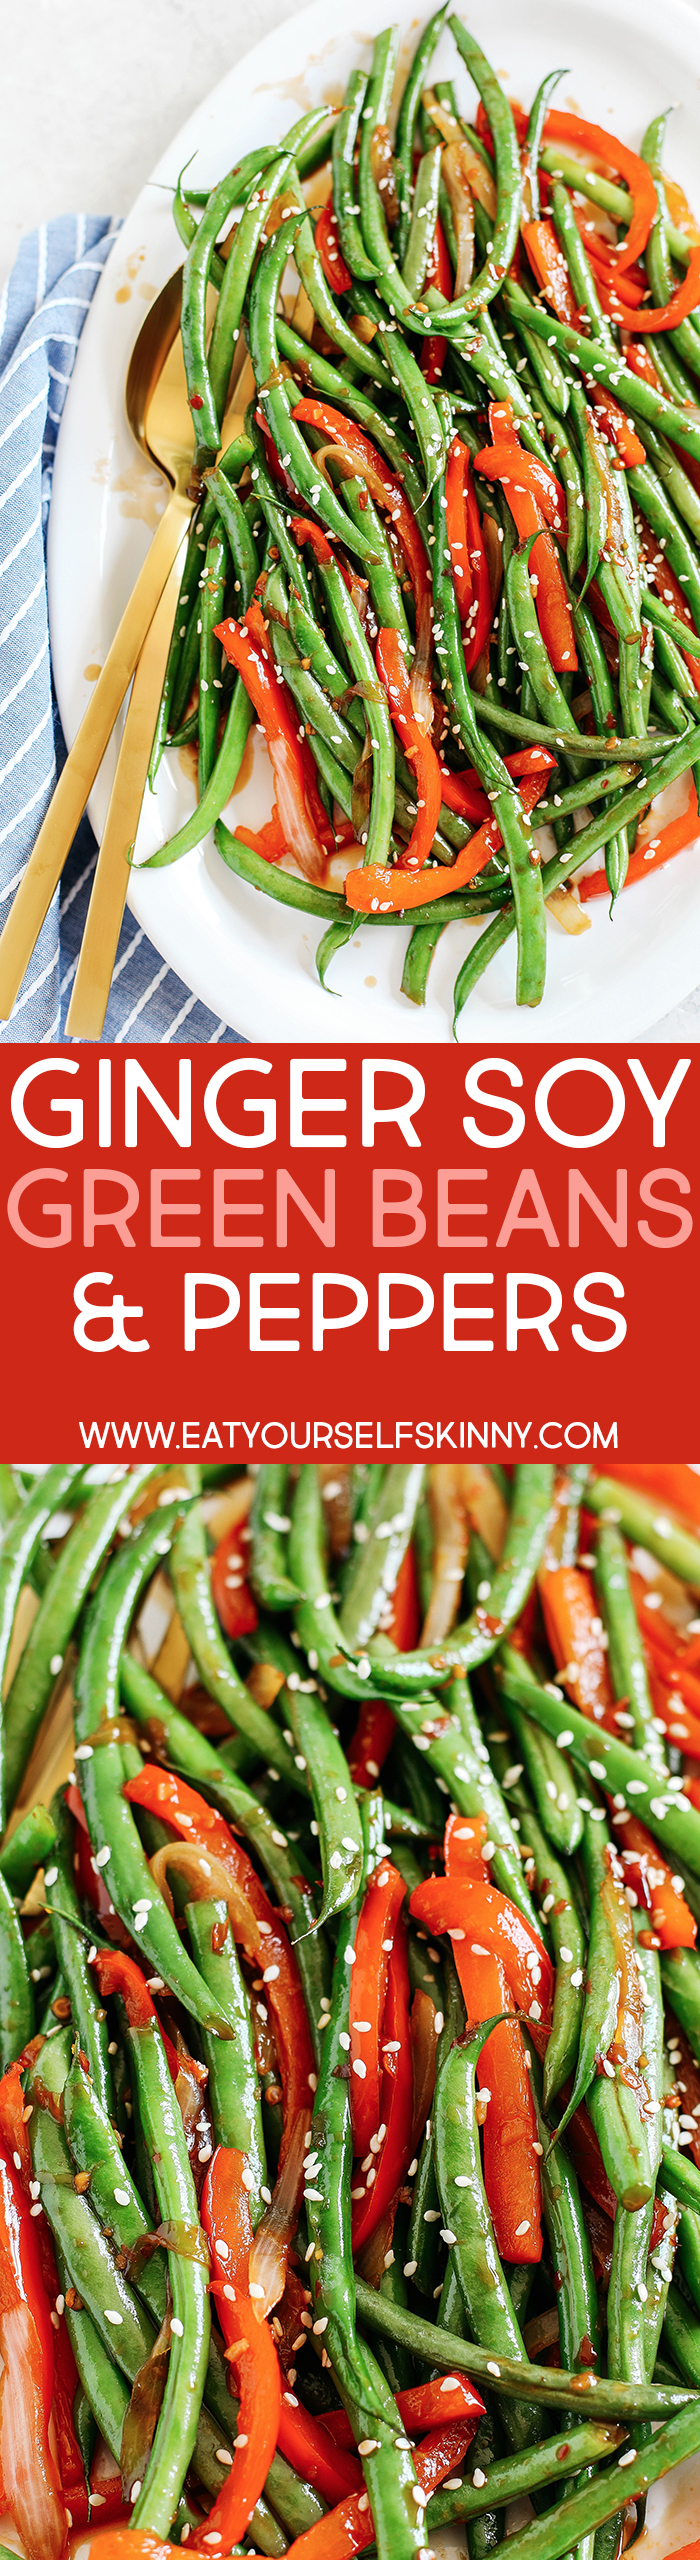 Delicious Ginger Soy Glazed Green Beans and Peppers make a quick and easy side dish that is full of flavor and tastes like you ordered them from your favorite Asian restaurant!